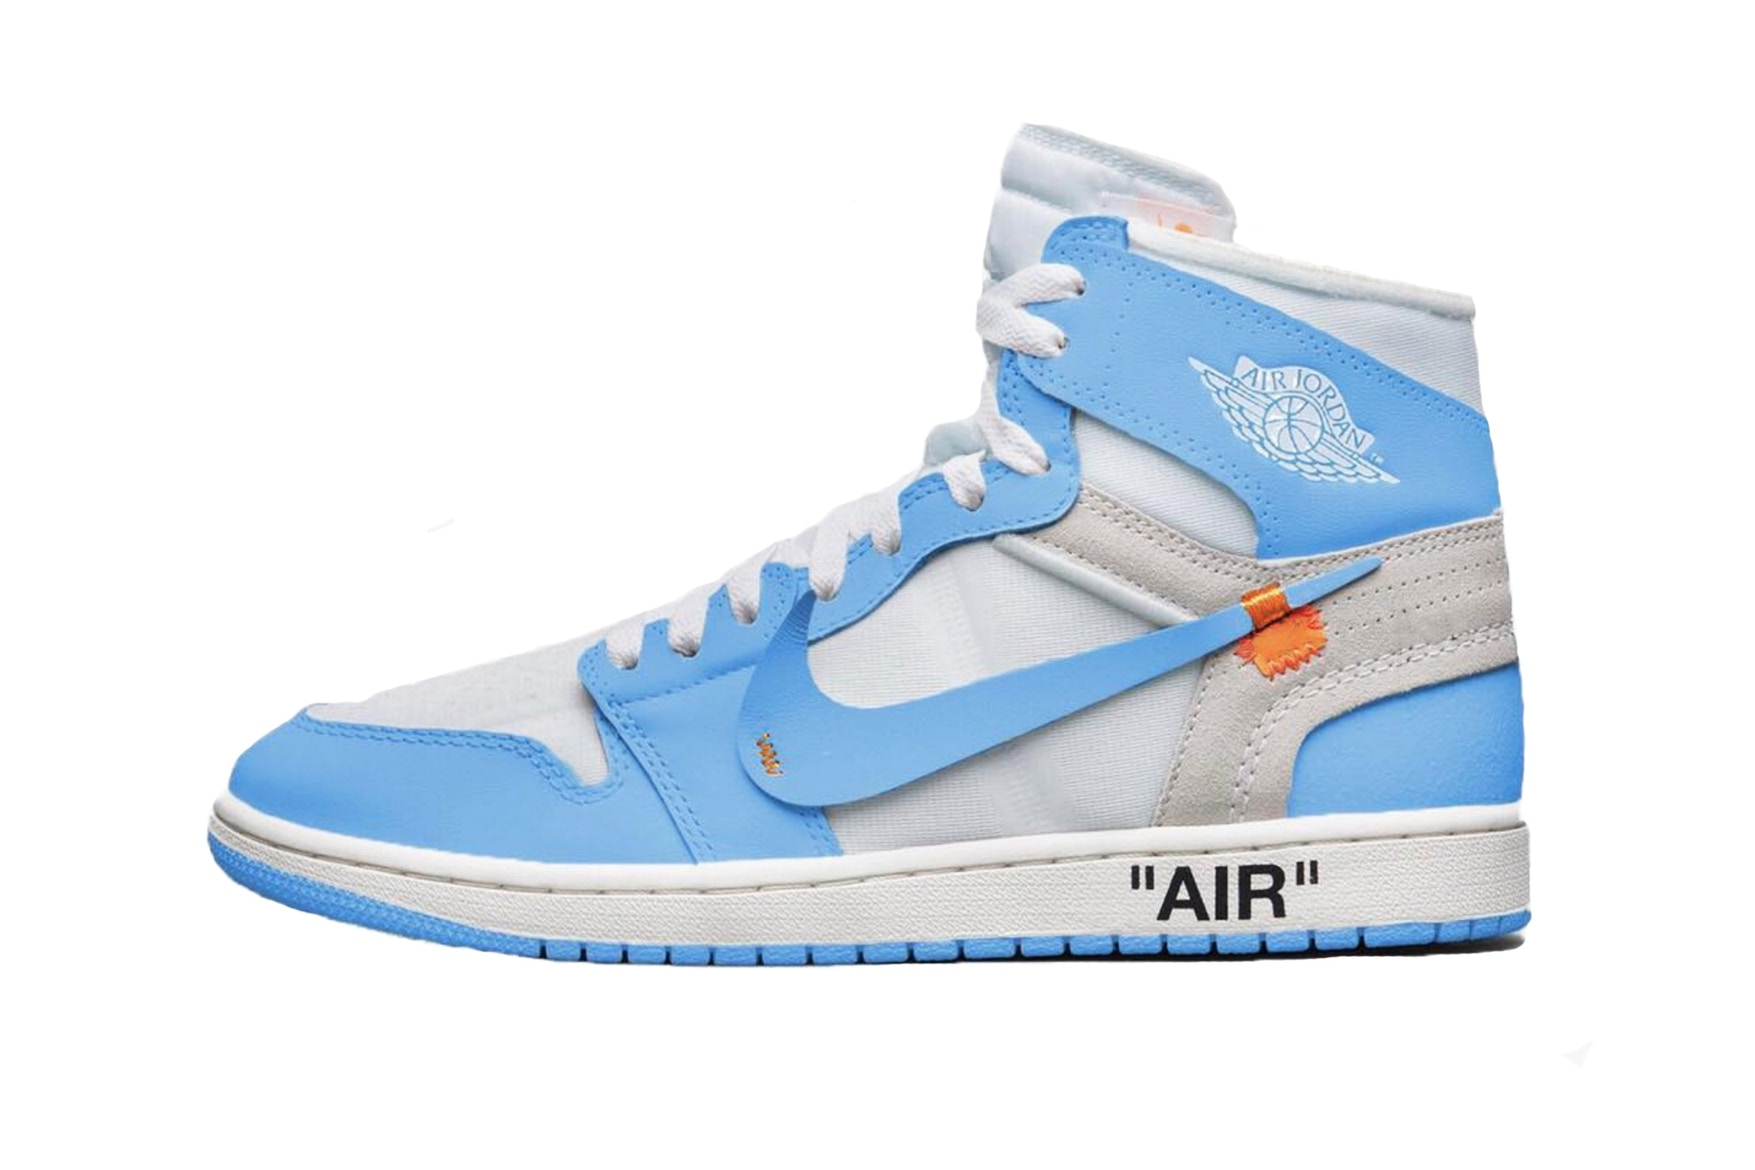 "The Virgil Abloh x Air Jordan 1 ""UNC"" Colorway Now has a Possible Release Date and Price"